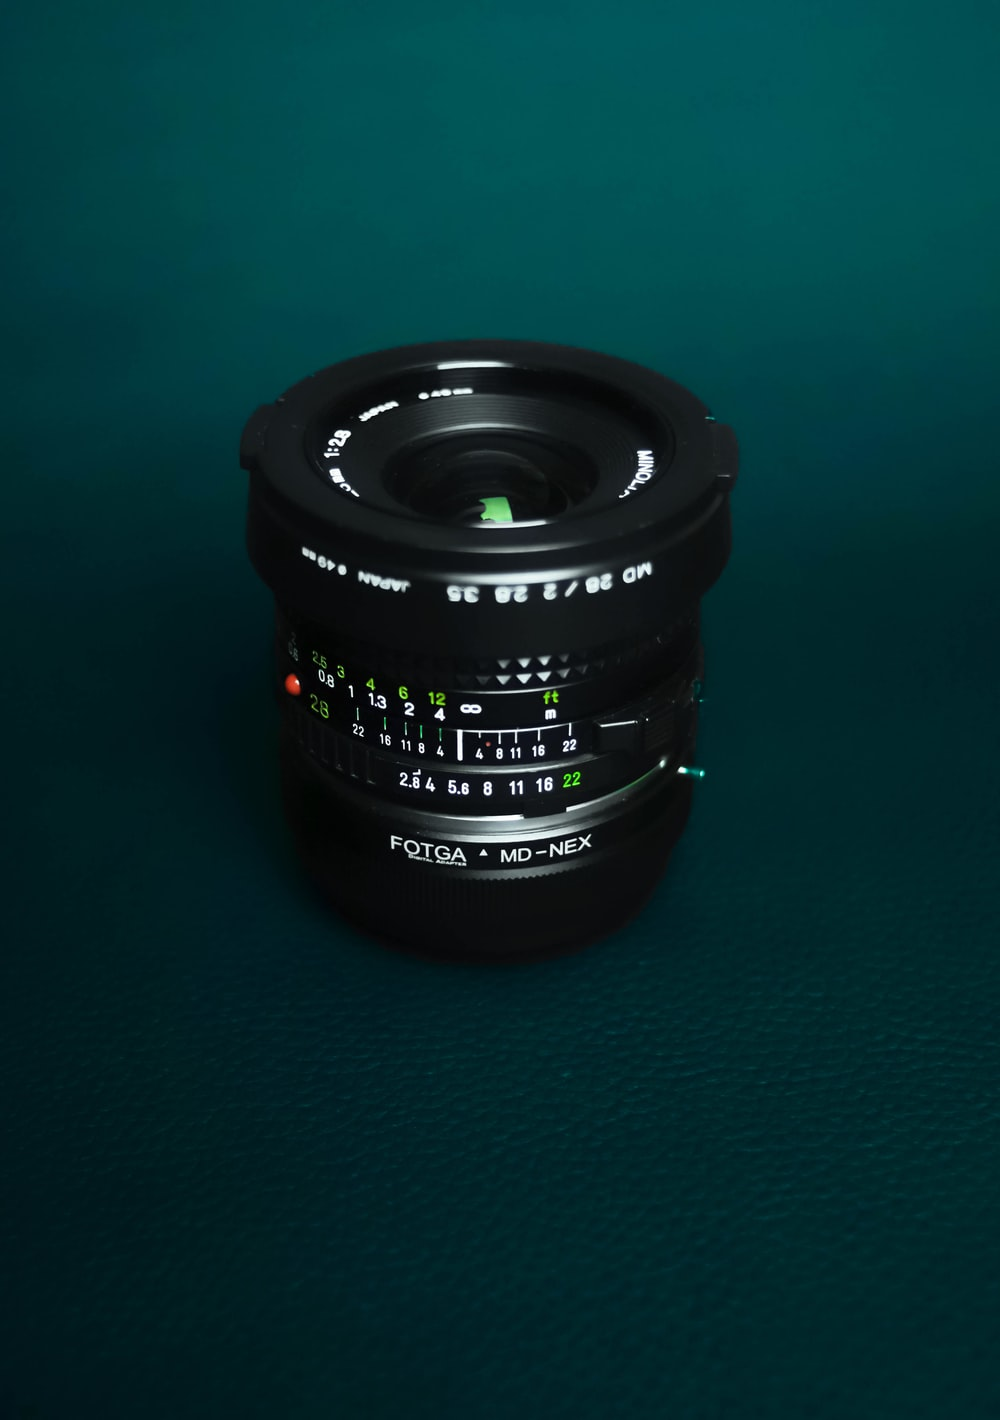 black camera lens on green surface